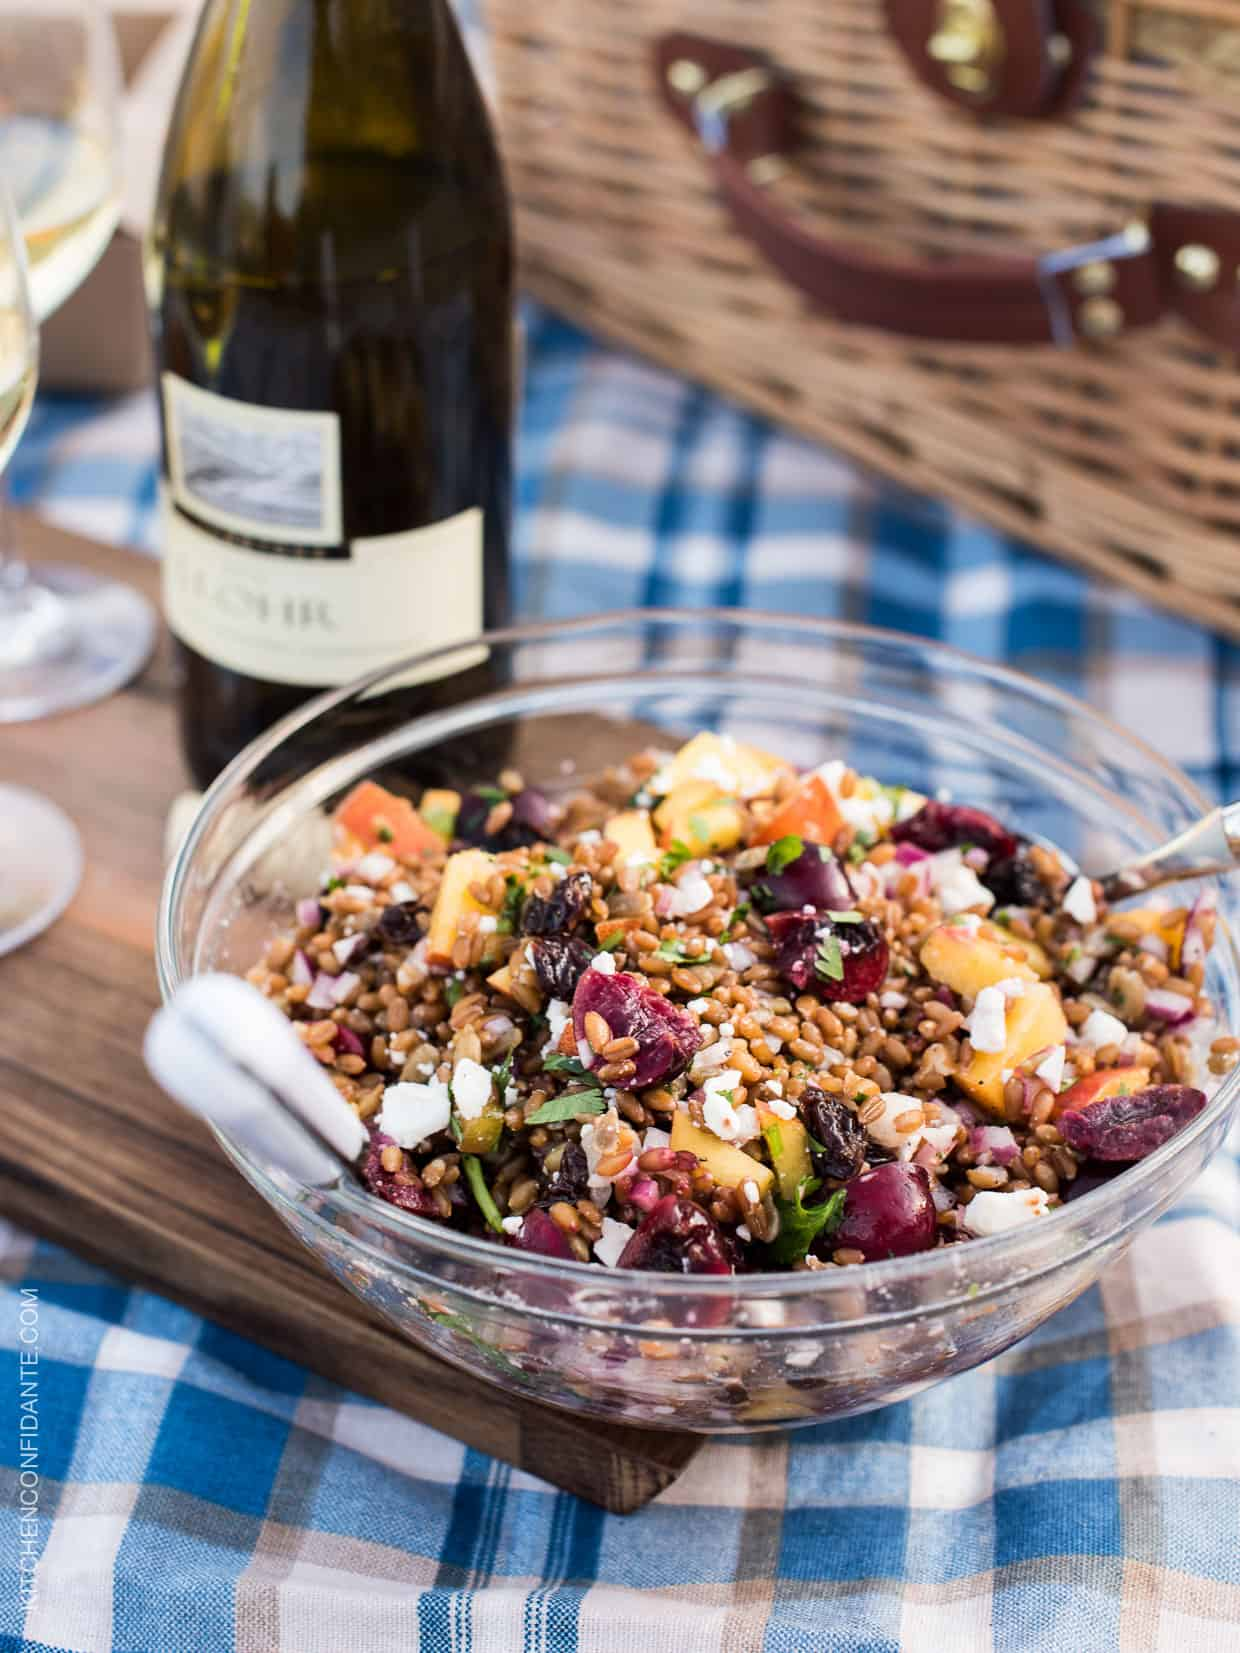 Summer Wheatberry Salad with Stone Fruits and Goat Cheese